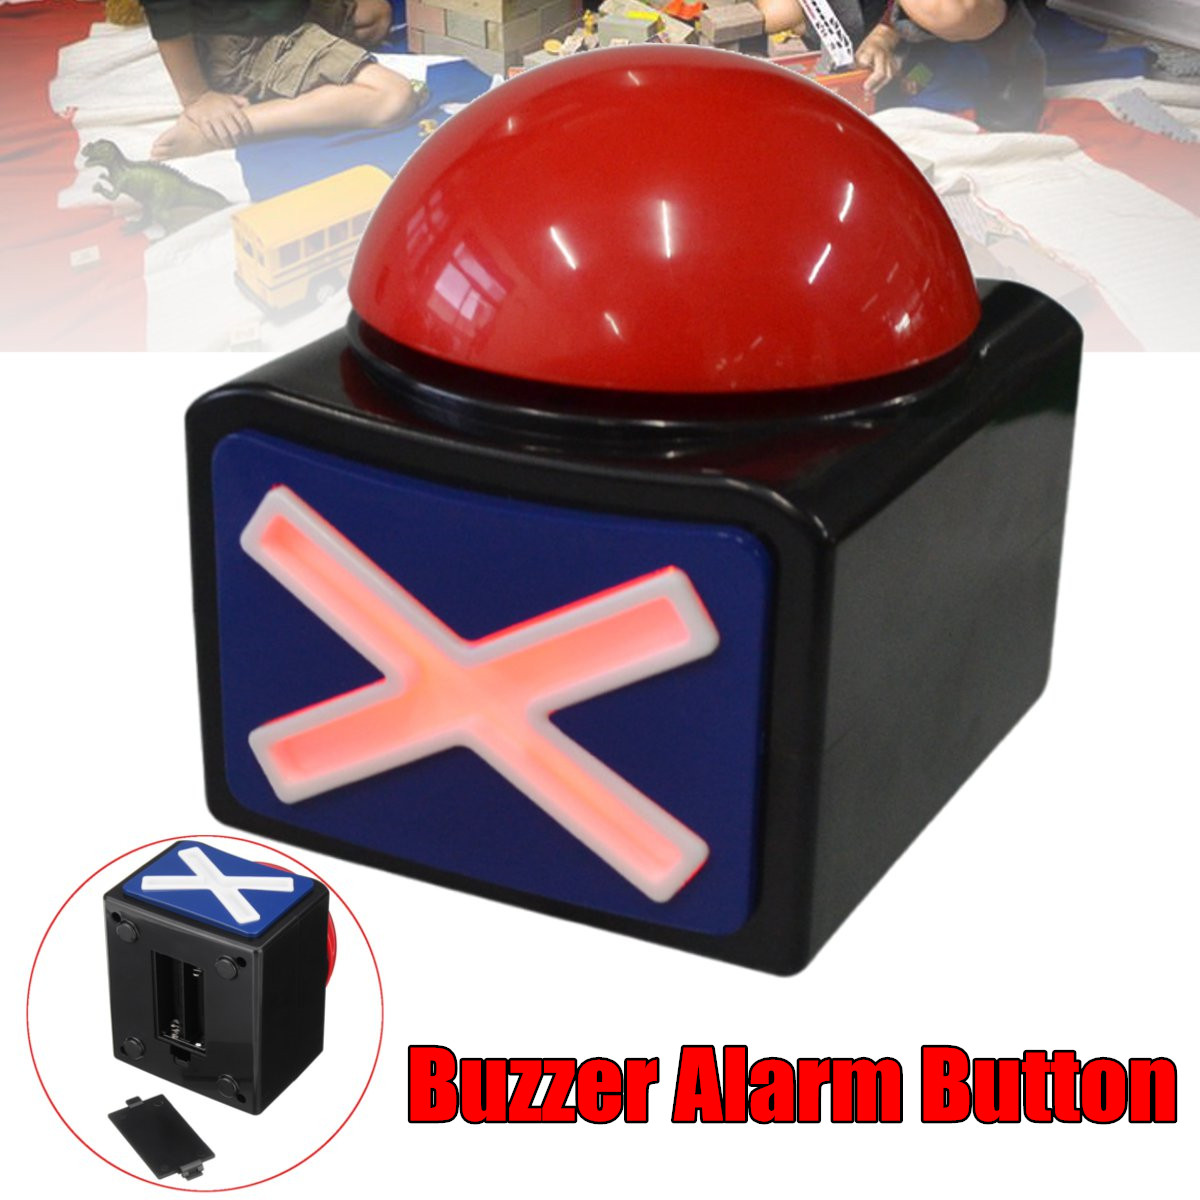 Rouge Jeu Réponse Buzzer Alarme Bouton Avec Sound Light Soulager Le Stress Blague Blague Grand